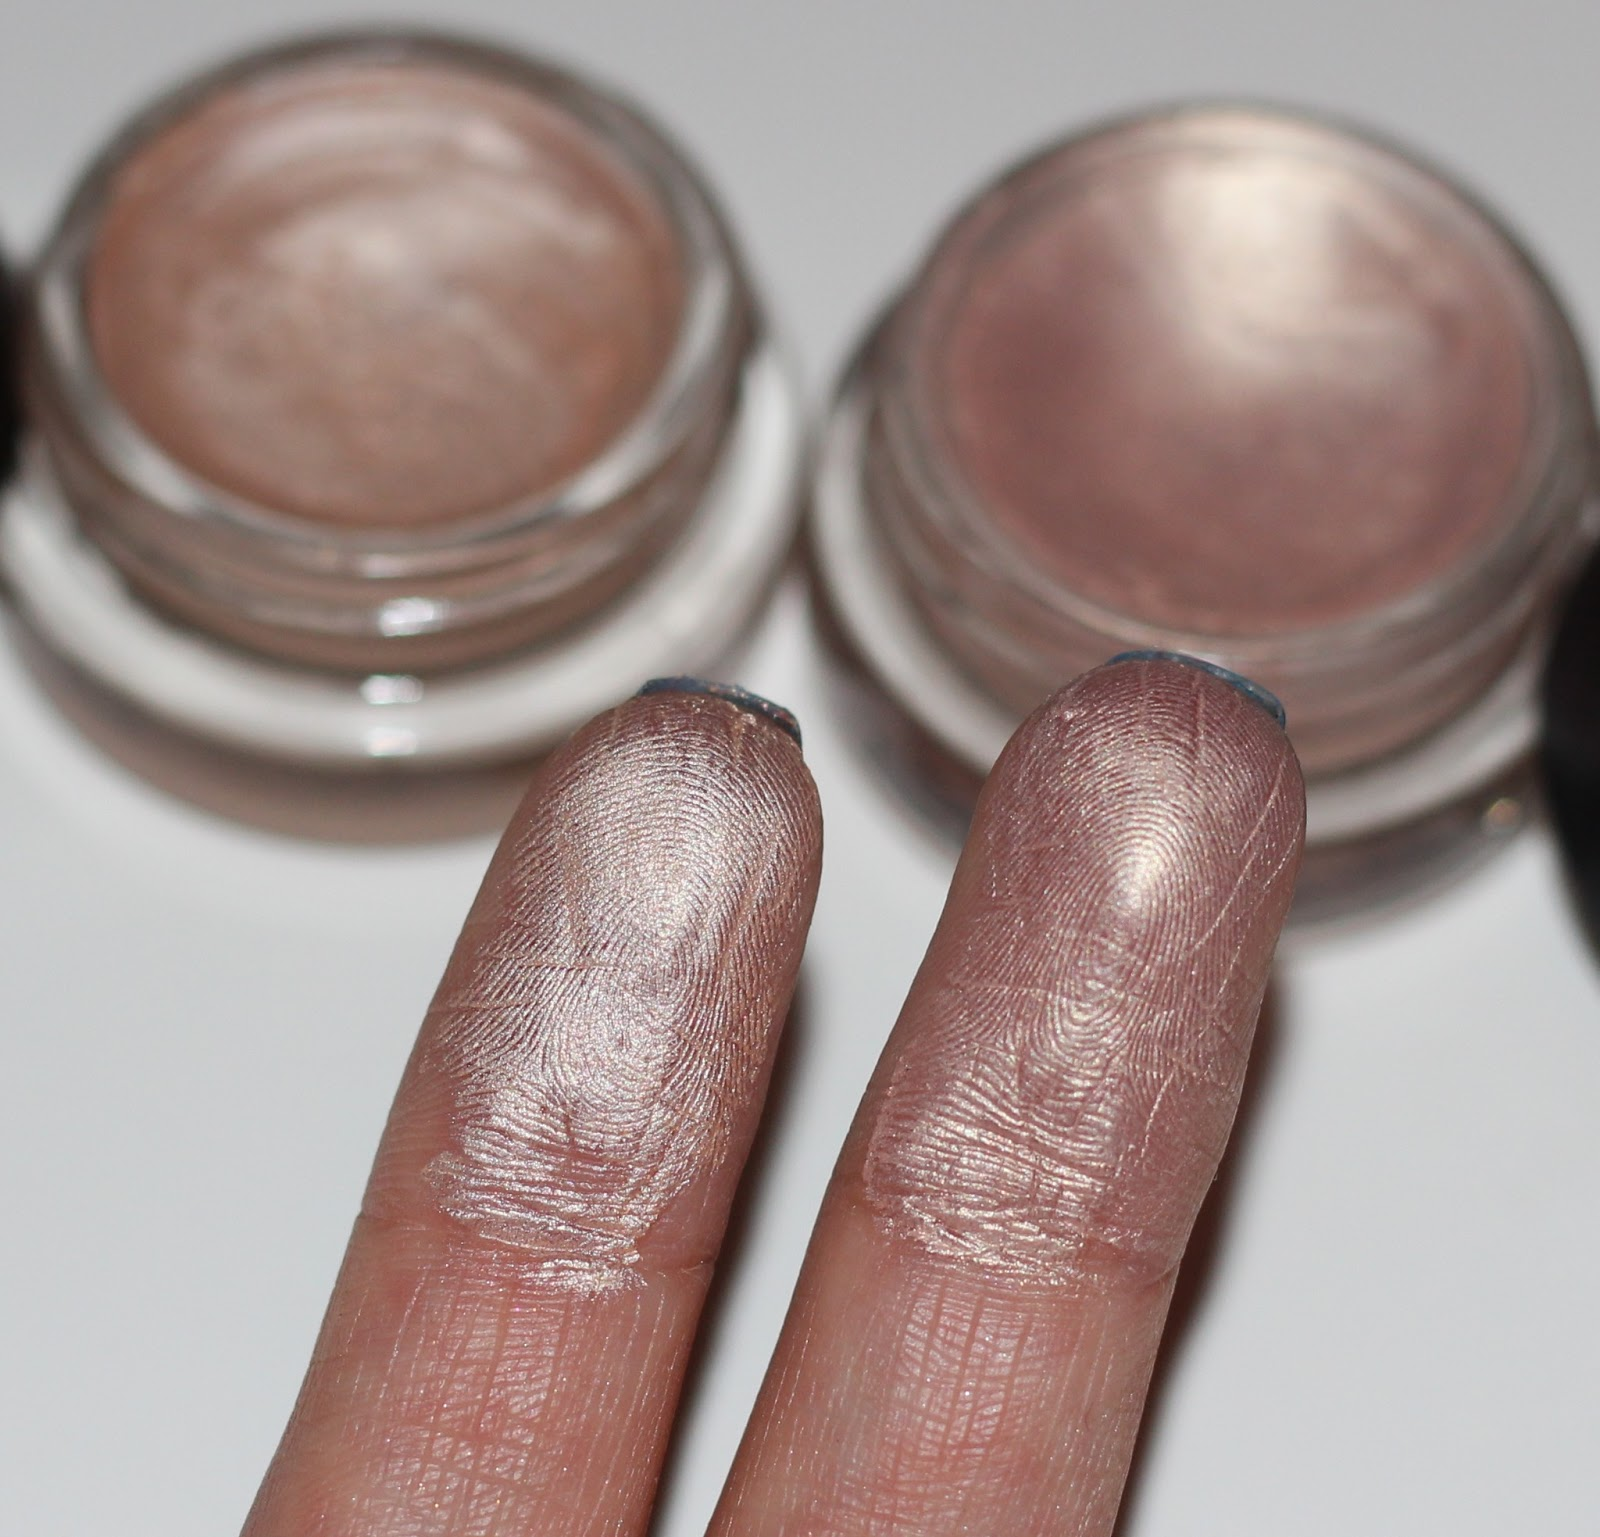 Dupe paint pot bare study x color tattoo metal barely for Maybelline color tattoo barely branded